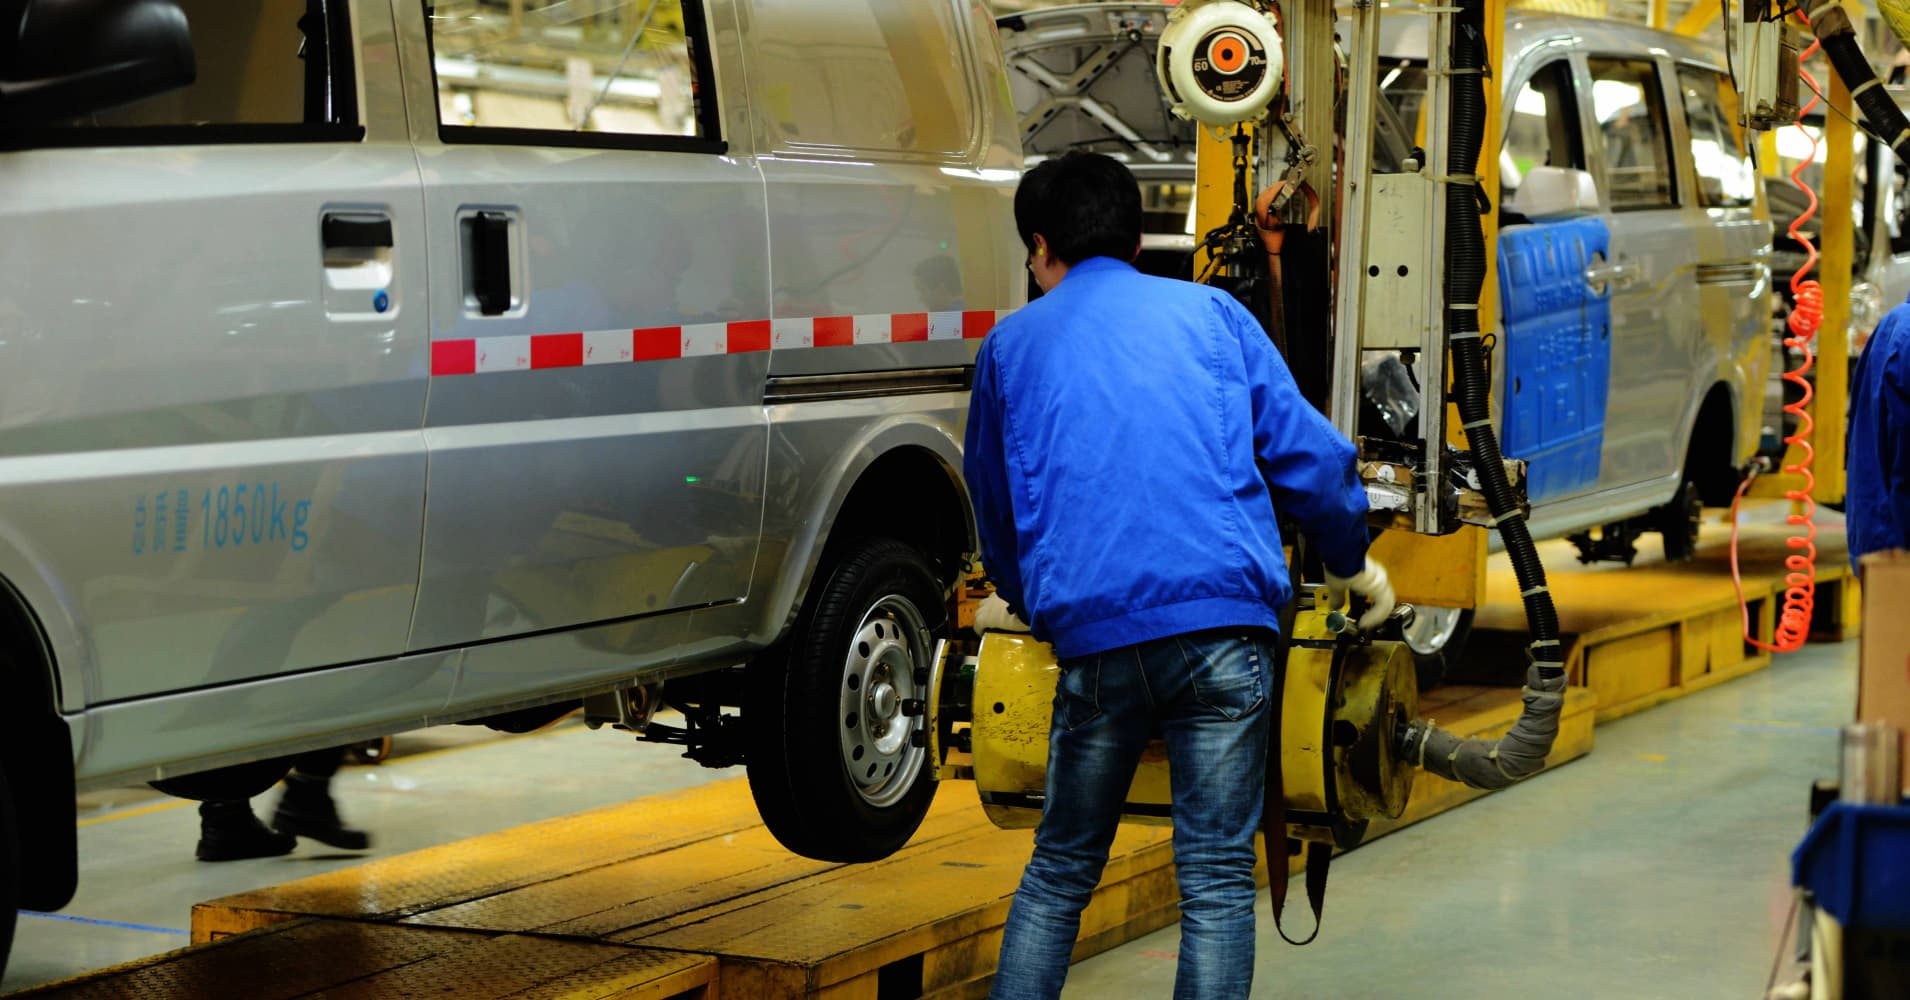 General motors shares fall 3 after report china will for General motors annual report 2016